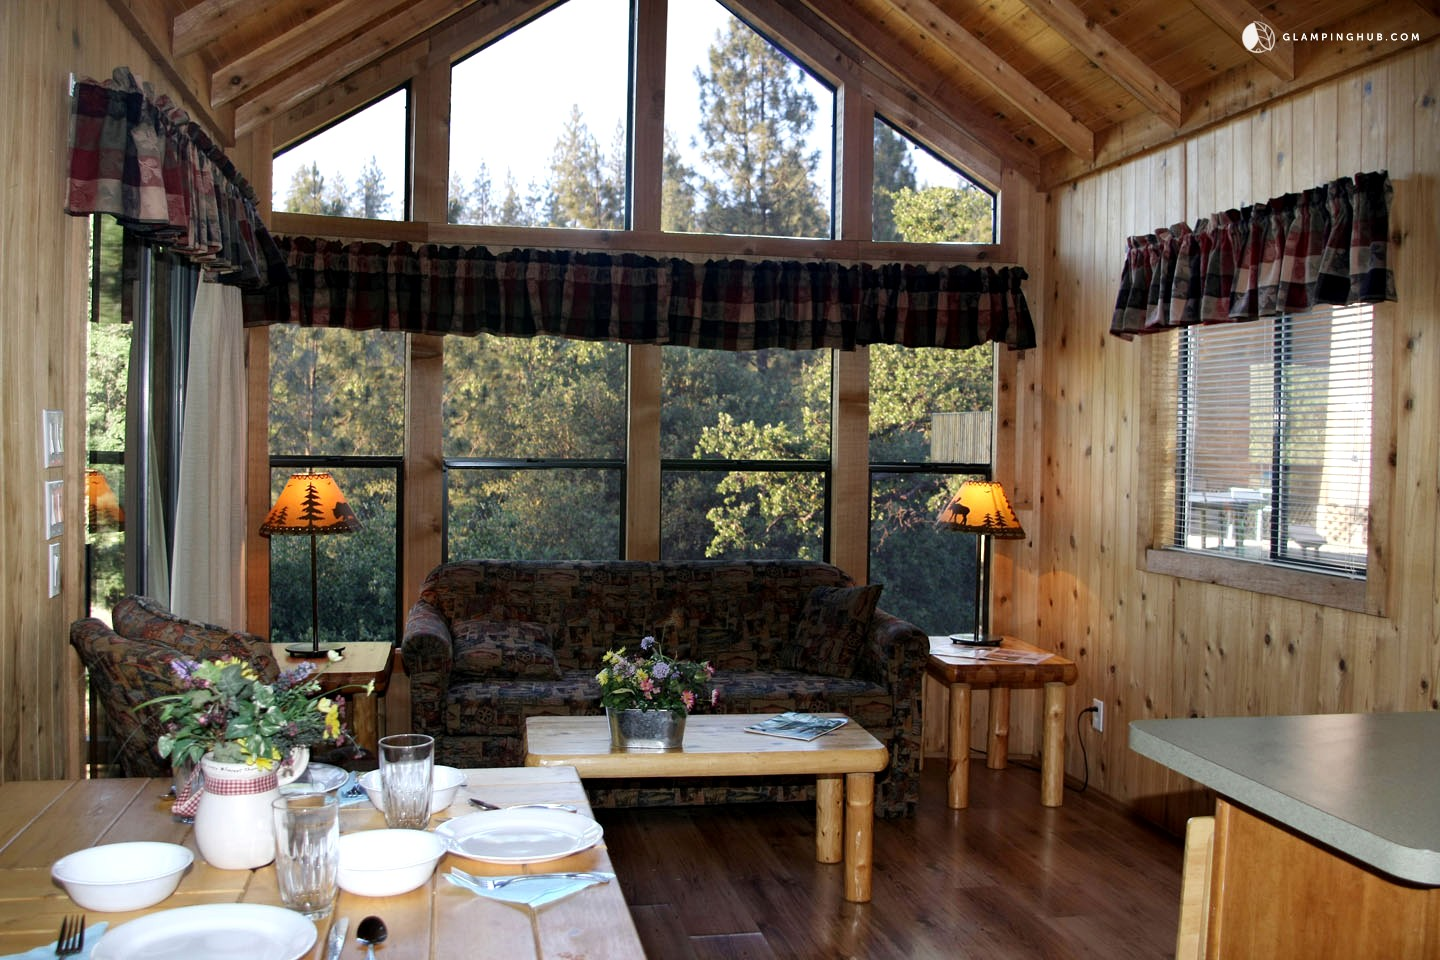 Cabin vacation rentals near yosemite national park for Groveland ca cabin rentals